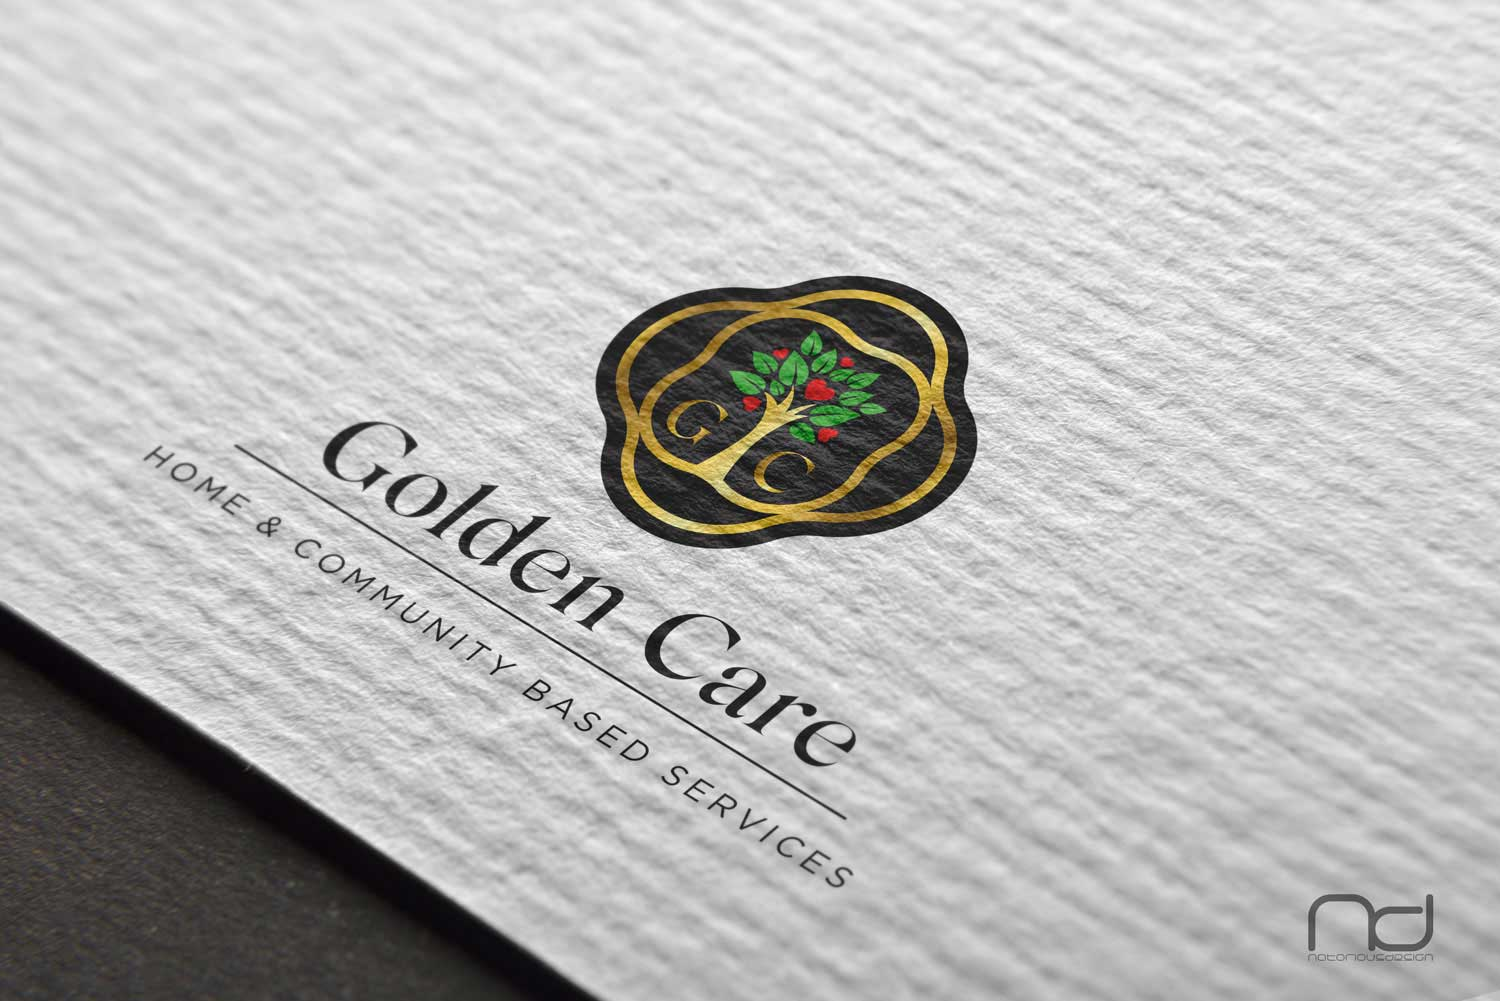 Golden Care Services